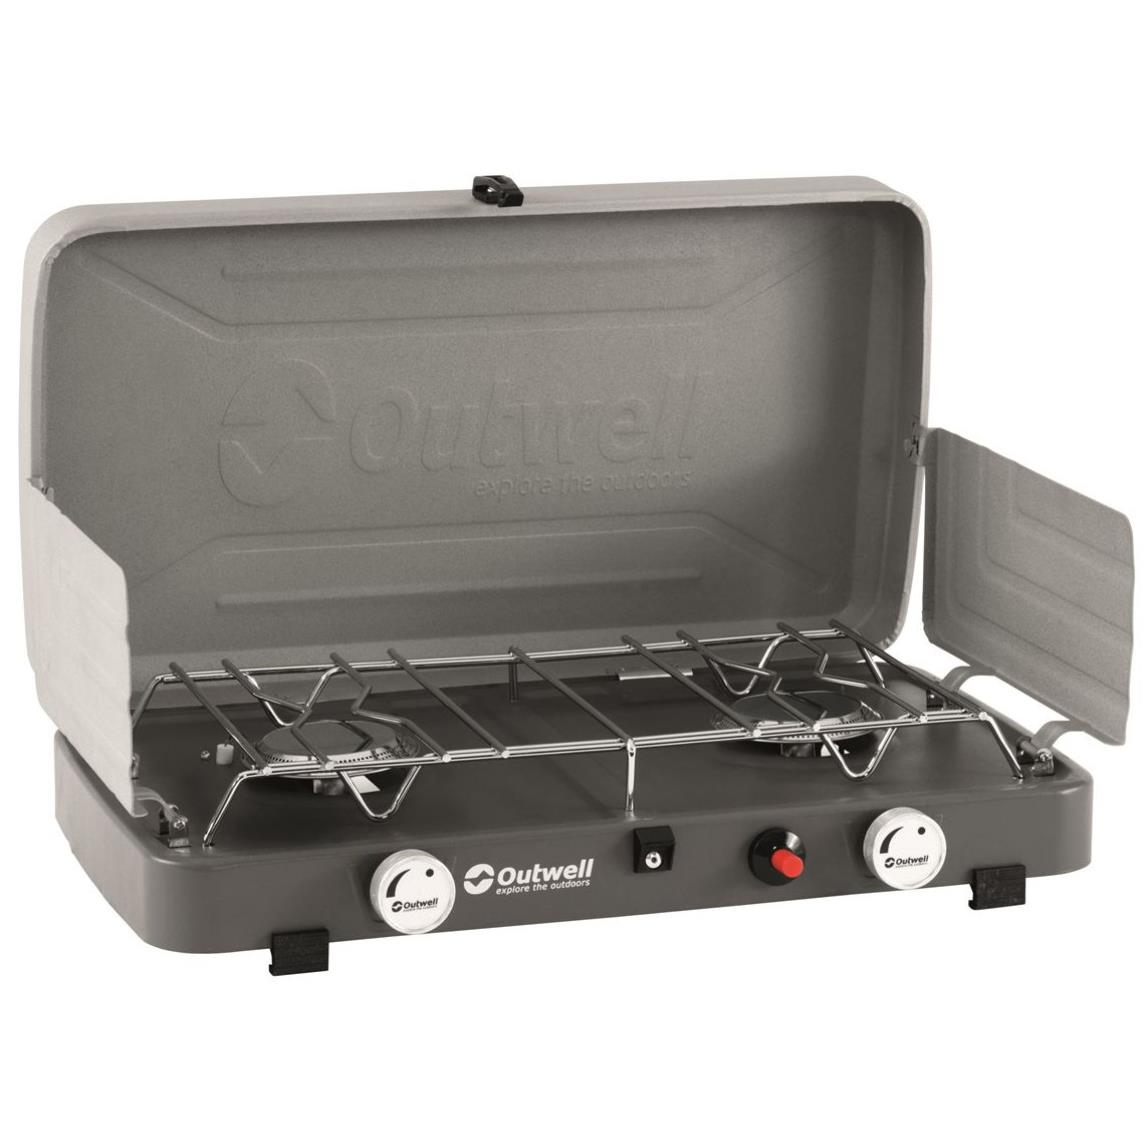 Outwell Olida Stove Kocher